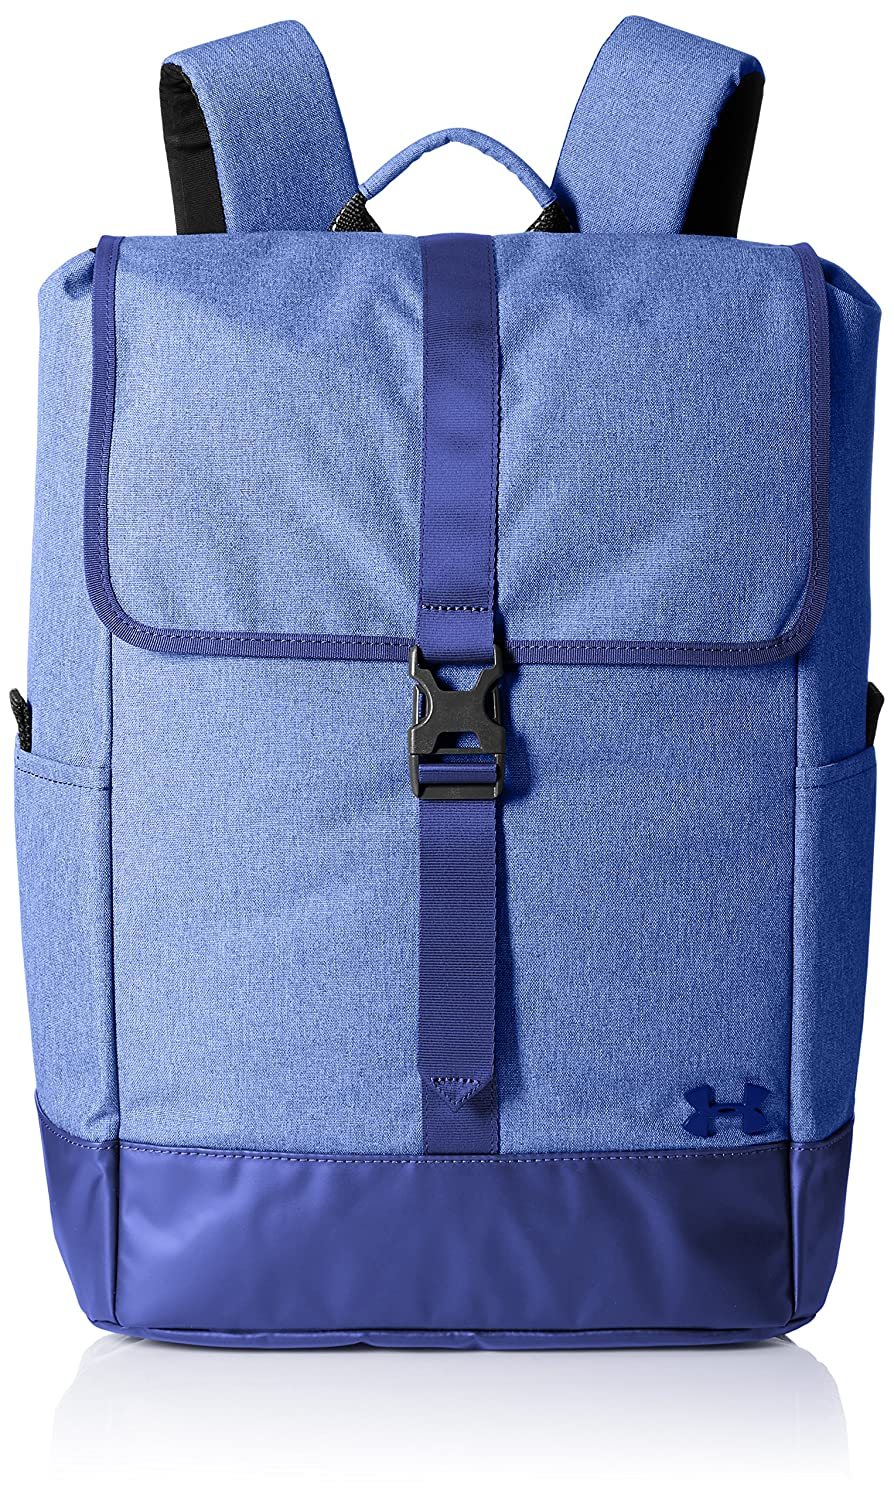 Under Armour Women 's UA Downtown Pack B071LHL6TP One Size|Formation Blue/Formation Blue Formation Blue/Formation Blue One Size